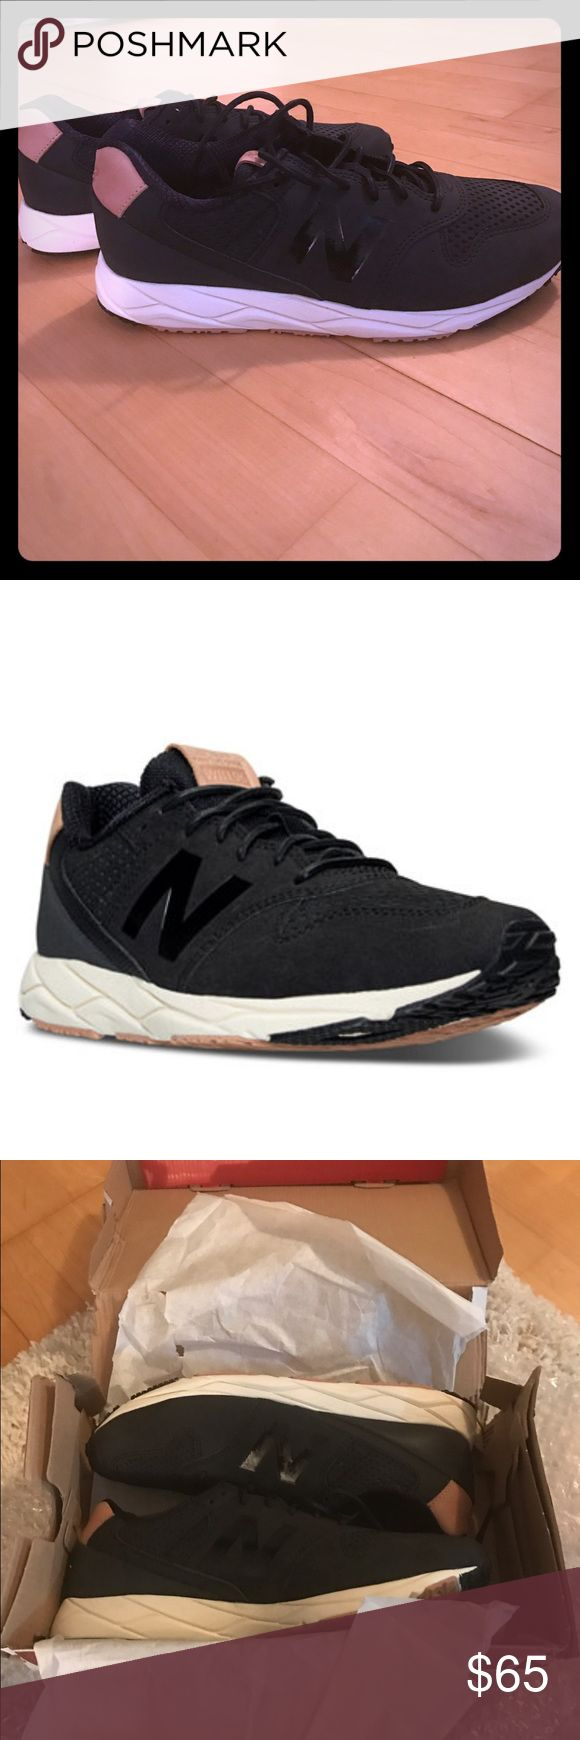 Brand New New Balance Sneakers Brand new New Balance Women's Black 96 Revlite Sneakers. Never been worn. Comes with box. New Balance Shoes Sneakers